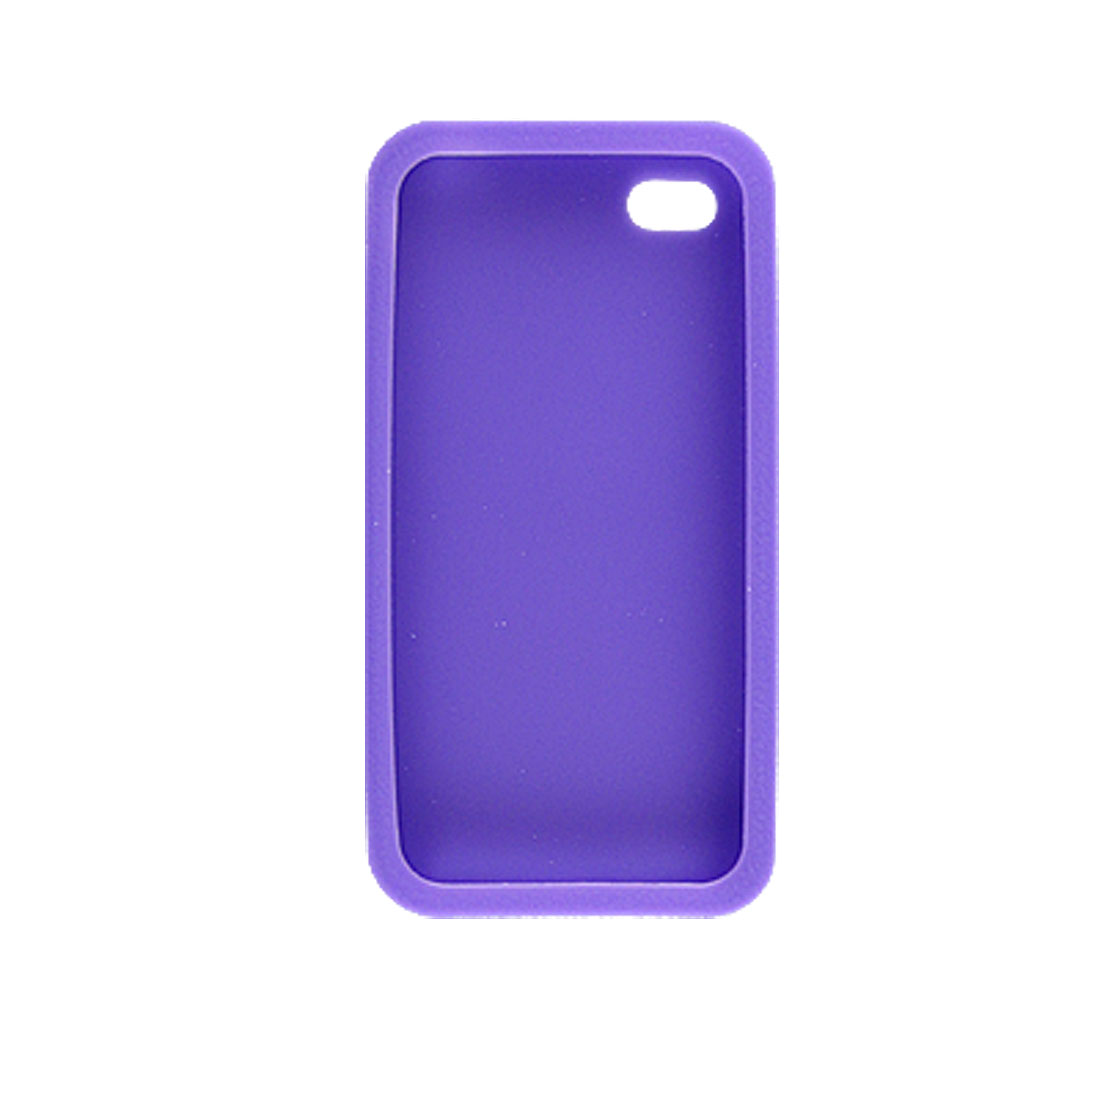 Purple Texture Silicone Skin Shell Cover for Apple iPhone 4